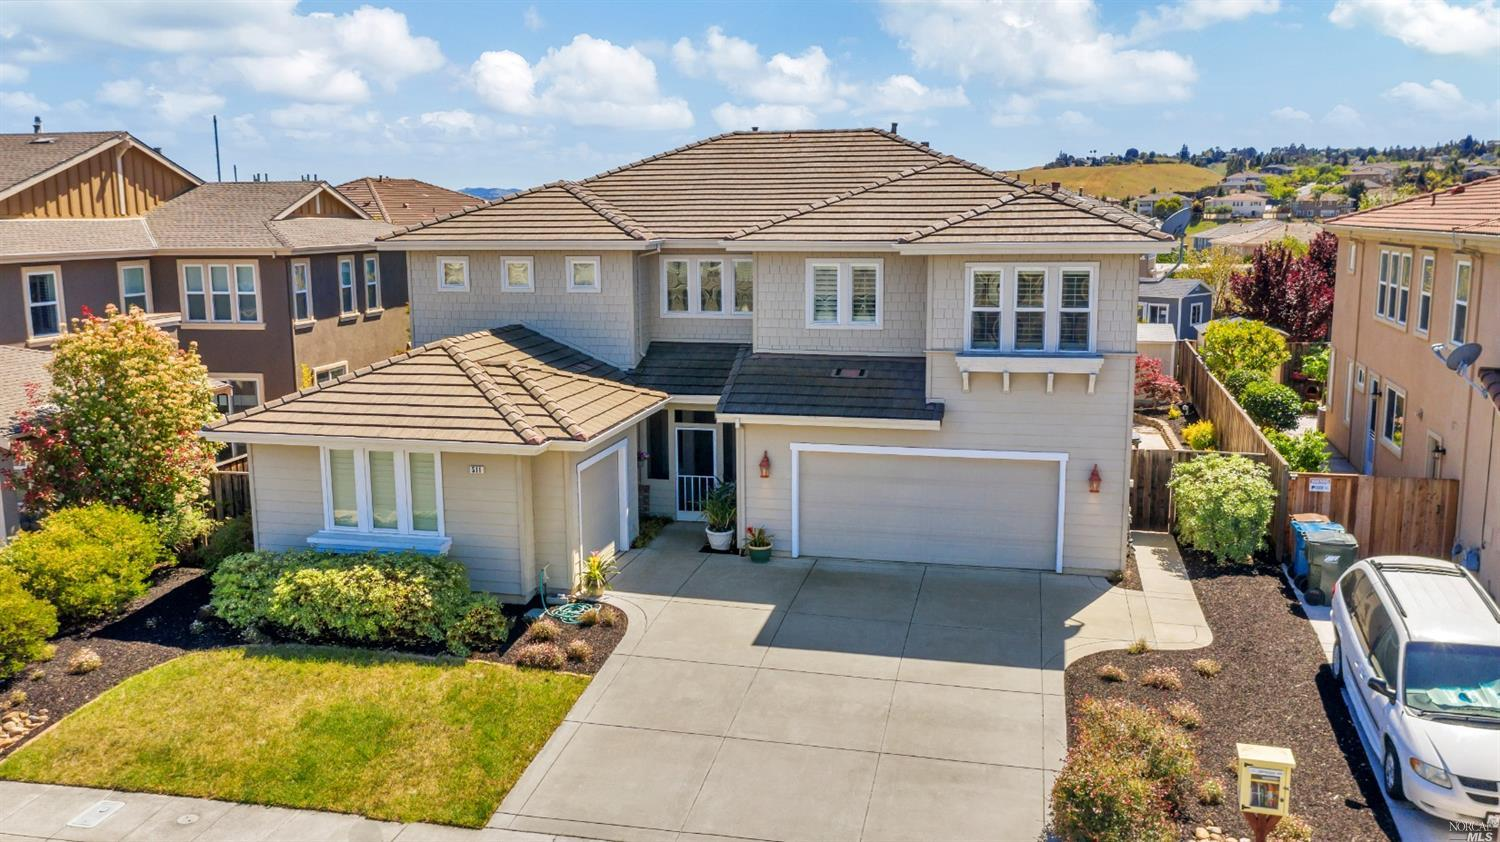 Photo of 511 Lansing Circle, Benicia, CA 94510